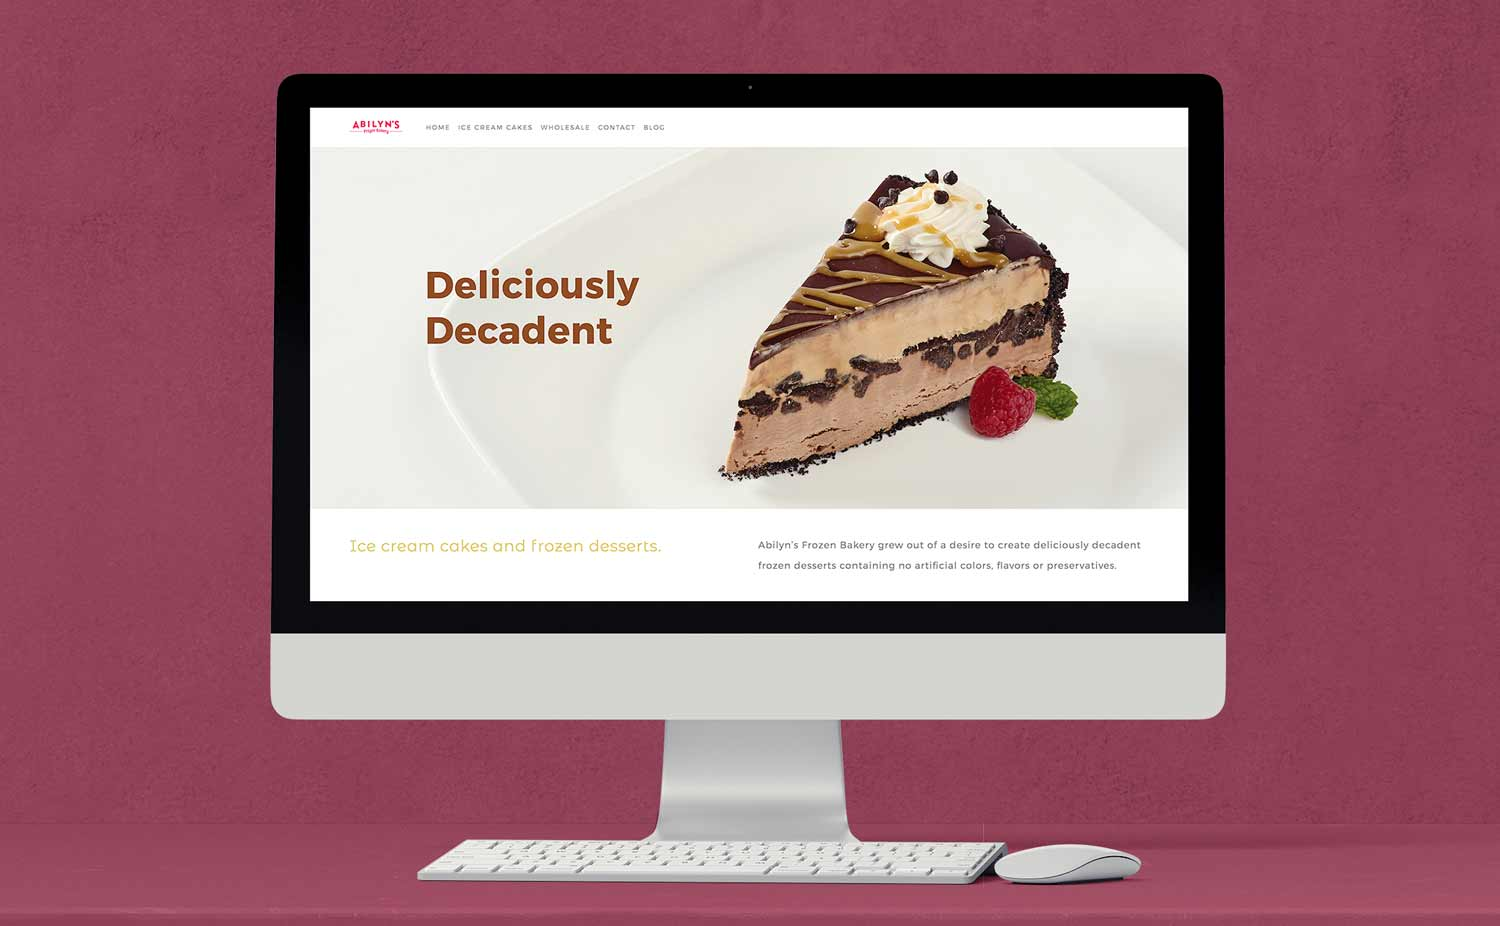 The website showcases all of Abilyn's Frozen bakery products.